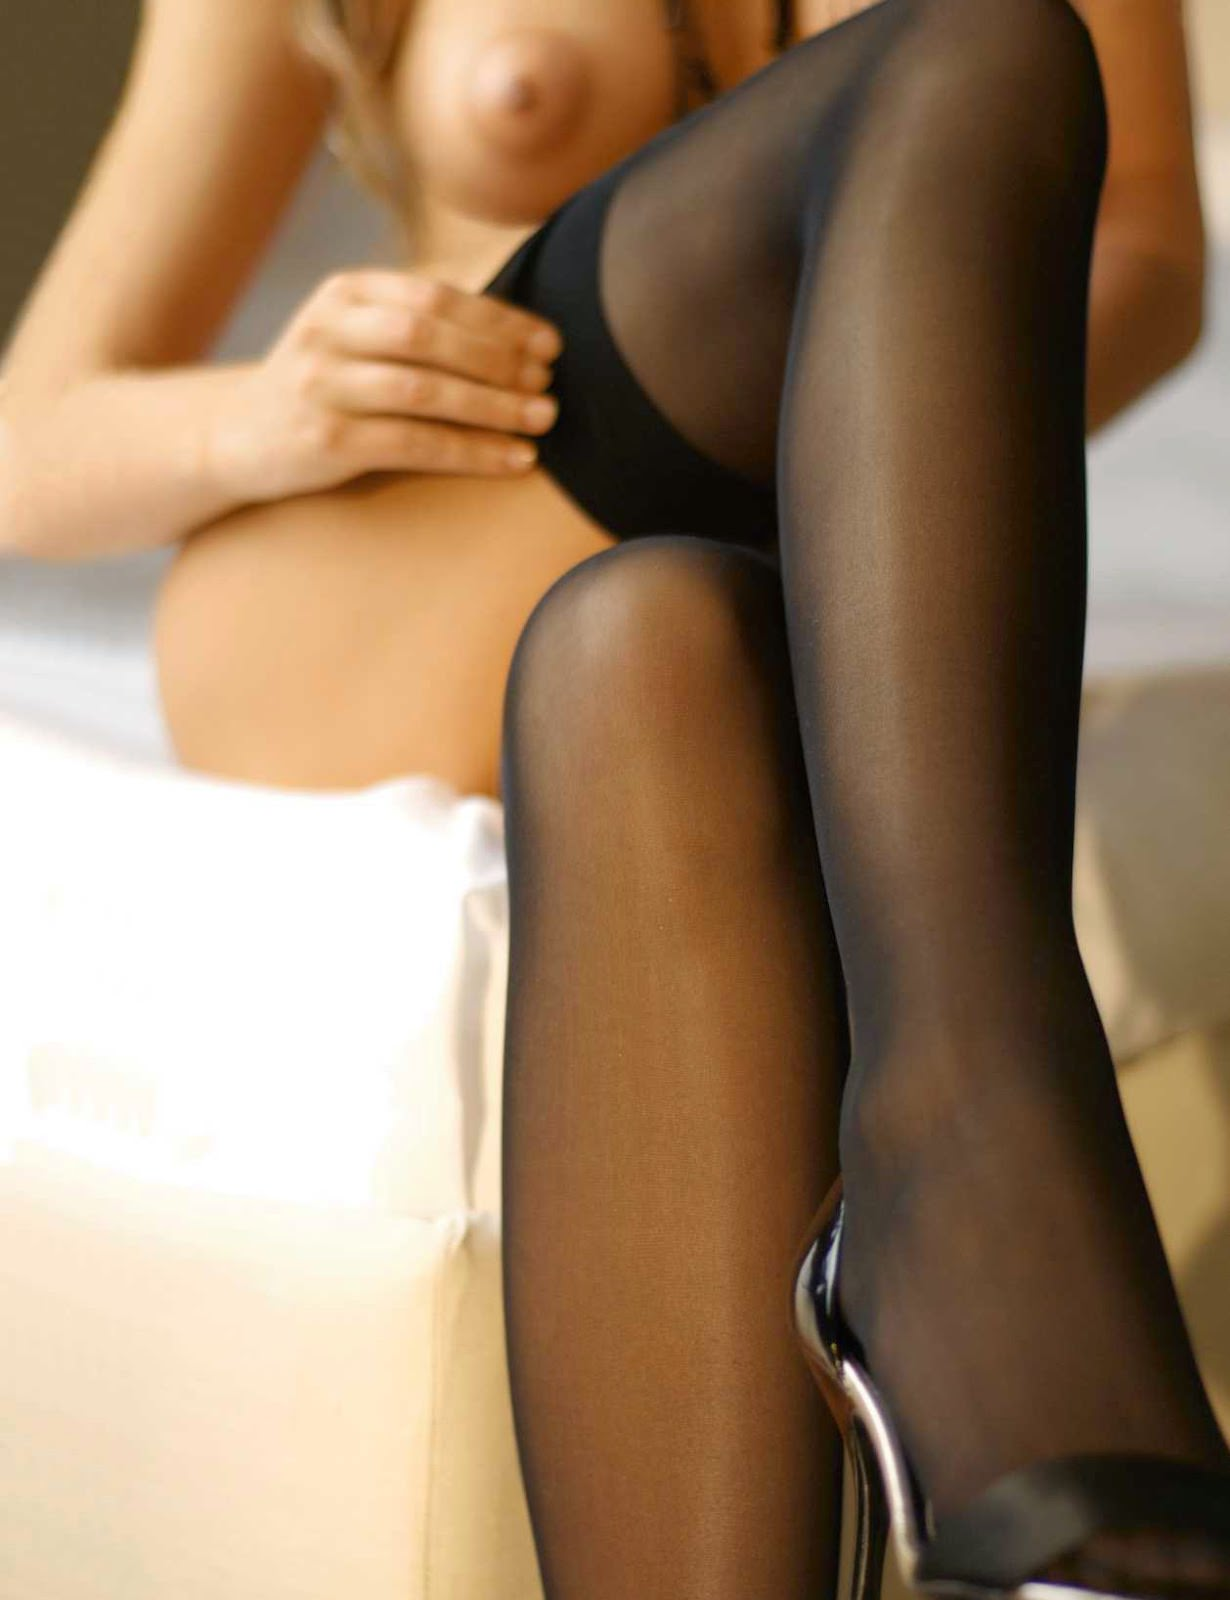 amateur stockings and heels and stocking stuffer ideas for young women